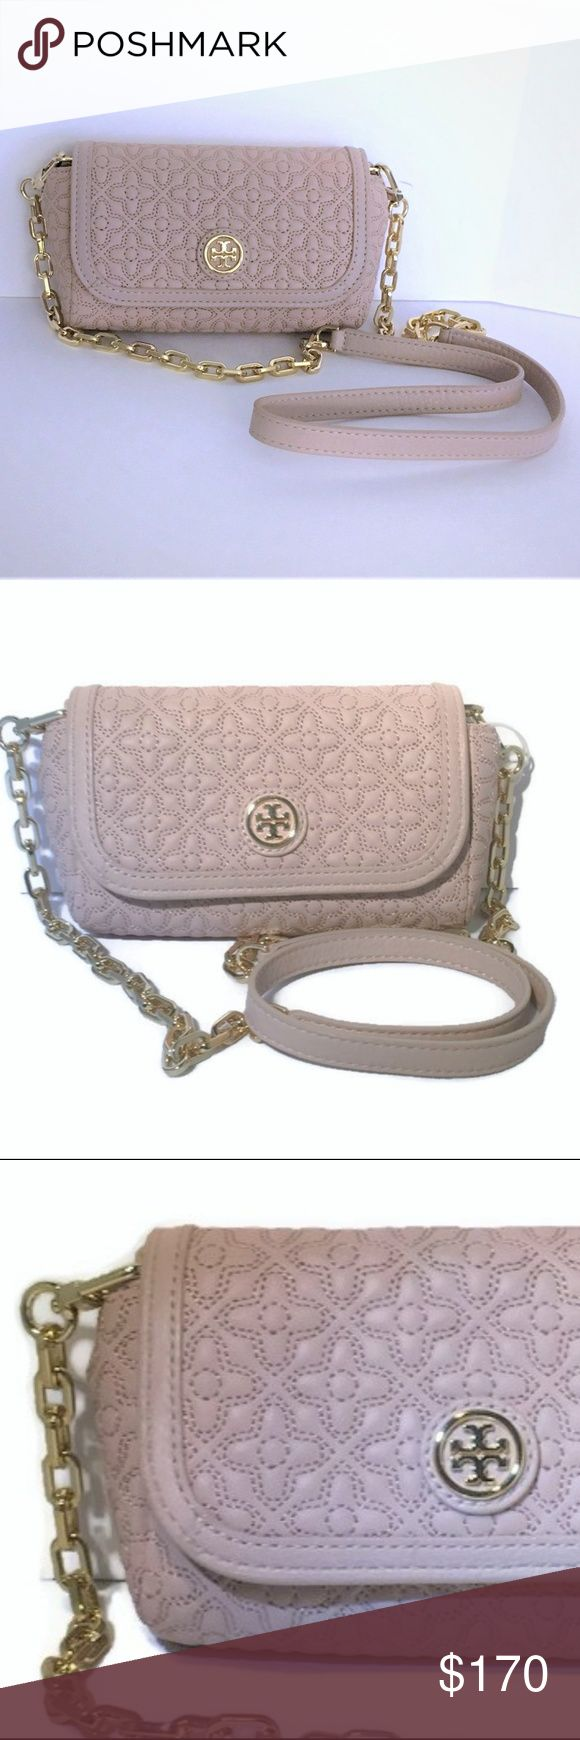 """Tory Burch Quilted Small Crossbody - Light Oak NWT This beautiful BRAND NEW quilted cross-body is a compact that fits your basic essentials, making it ultra practical. It comes with a removable chain strap, so you can wear it on your shoulder as a mini bag or carry it as a clutch.  Quilted Italian leather Flap Snap Closure  2 Interior Slip Pockets Logo Jacquard Lining Removable Chain & Leather CB Strap (22"""" Drop) Gold Tone hardware 6: x 4"""" x 1.7"""" Stored in Smoke-Free Environment  Gift Receipt Included TB Gift Bag Available Upon Request Tory Burch Bags Crossbody Bags"""